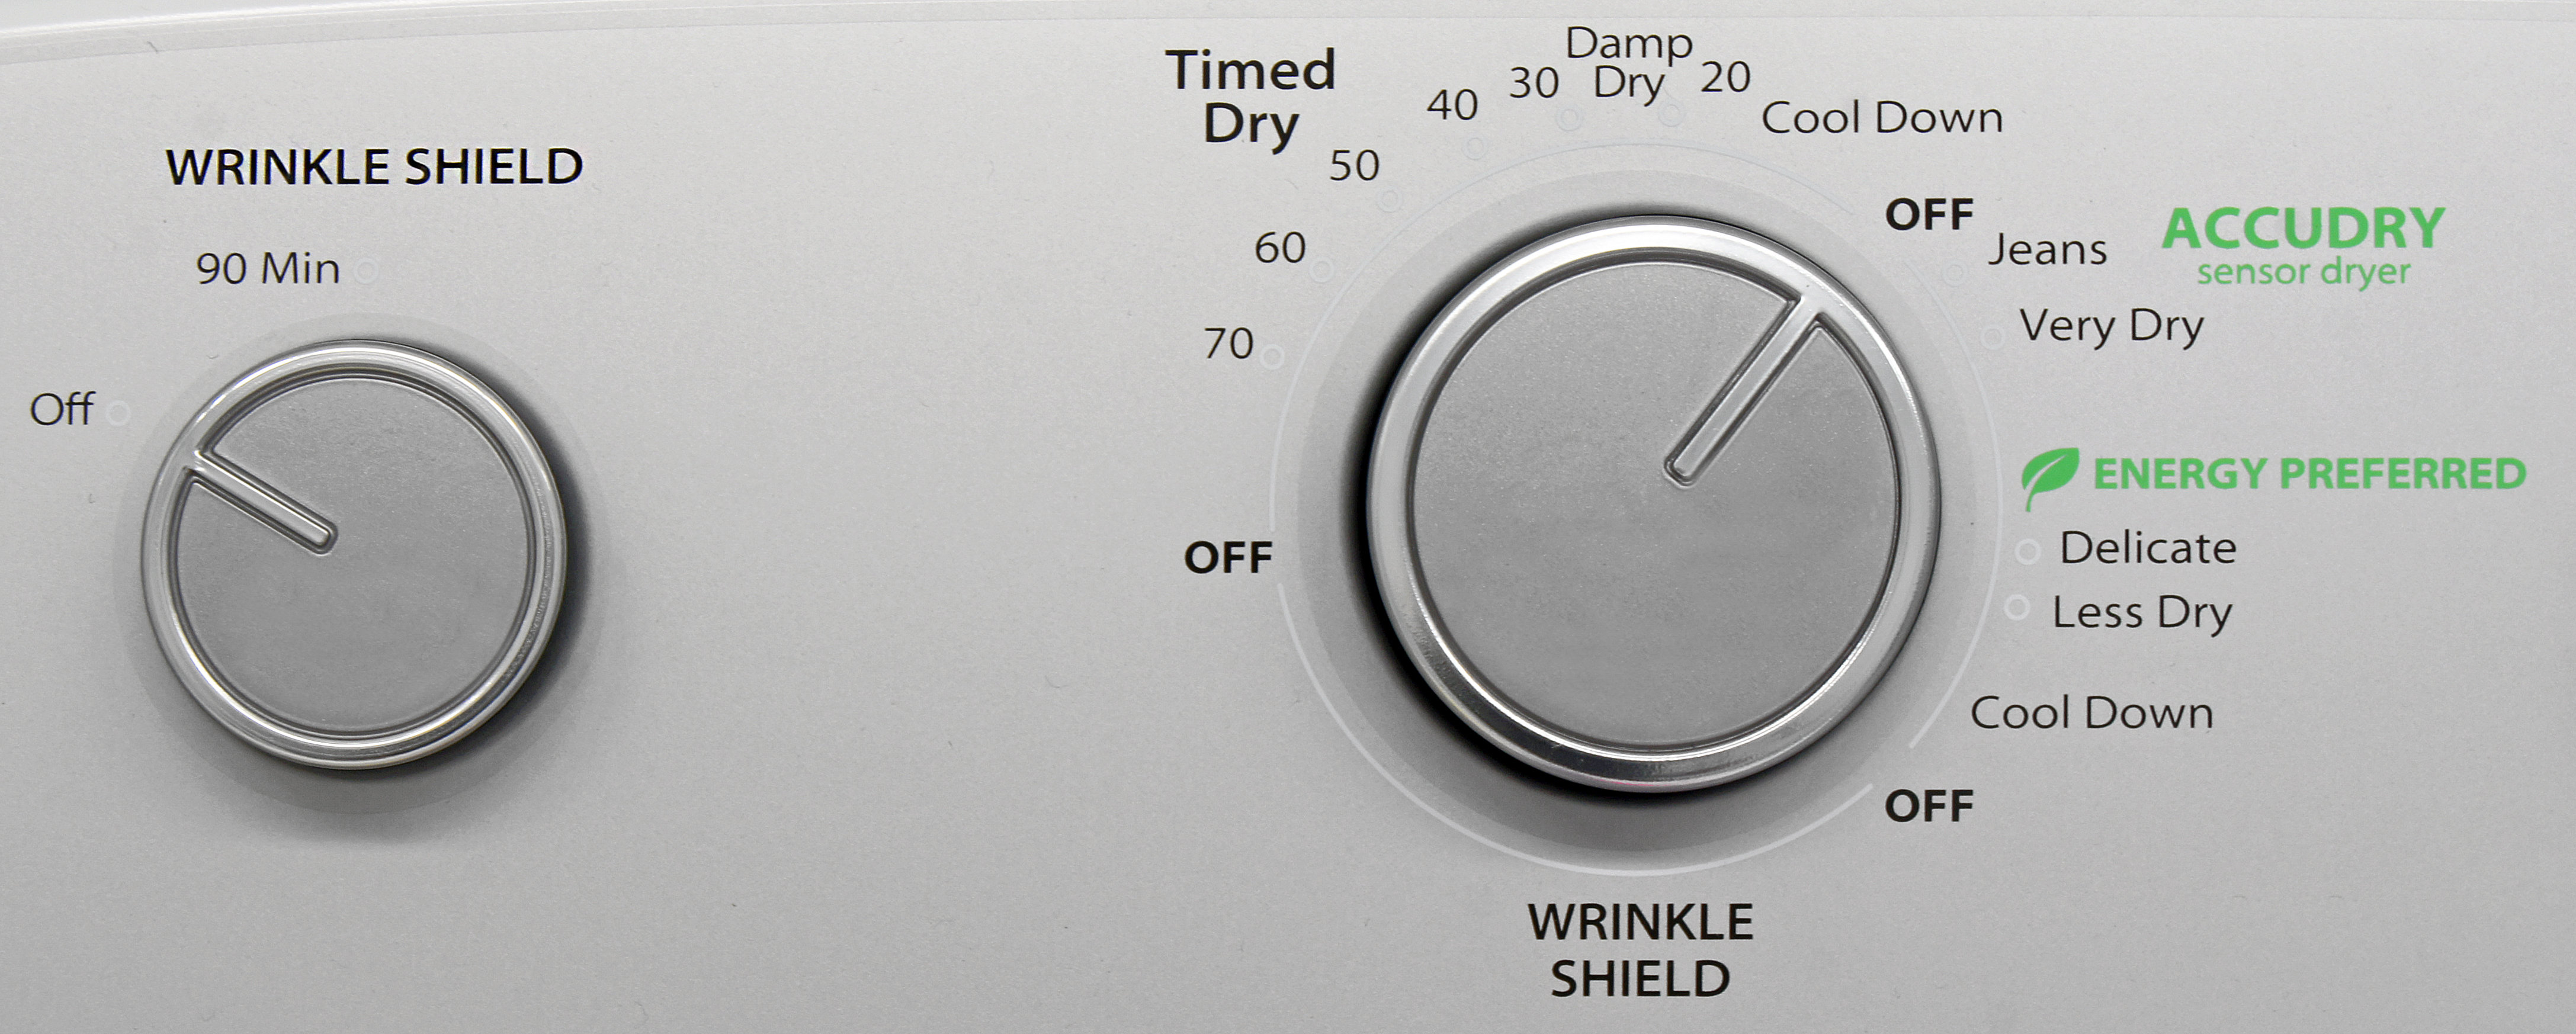 Even though it has a crank-style timer, the Whirlpool WED5000DW does actually incorporate sensor-based cycles.